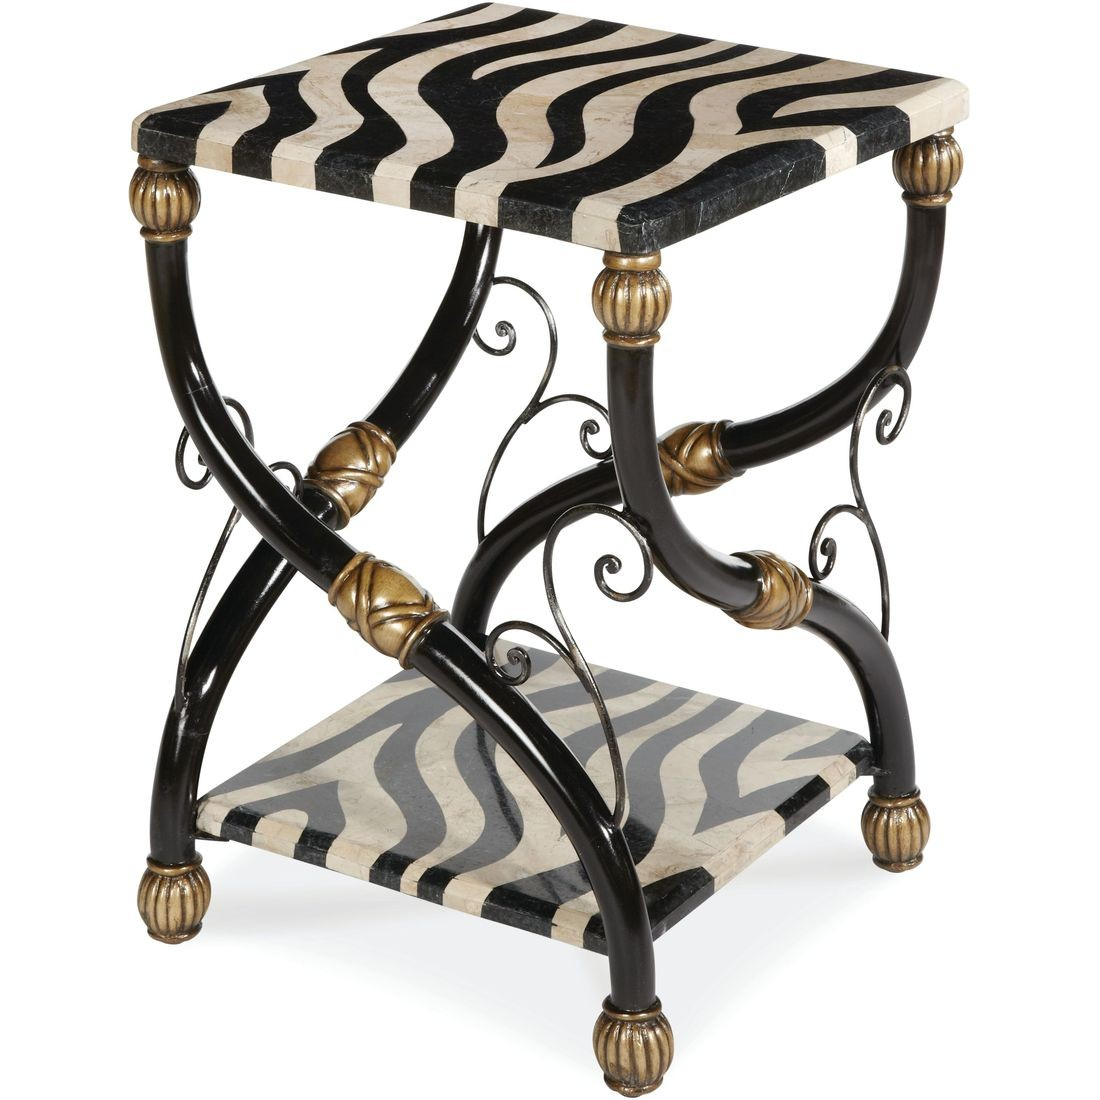 aico discoveries zebra accent table local furniture act caro sofa covers kmart woven patio clearance glass agate faux marble end west elm knock off waterproof phone pouch target